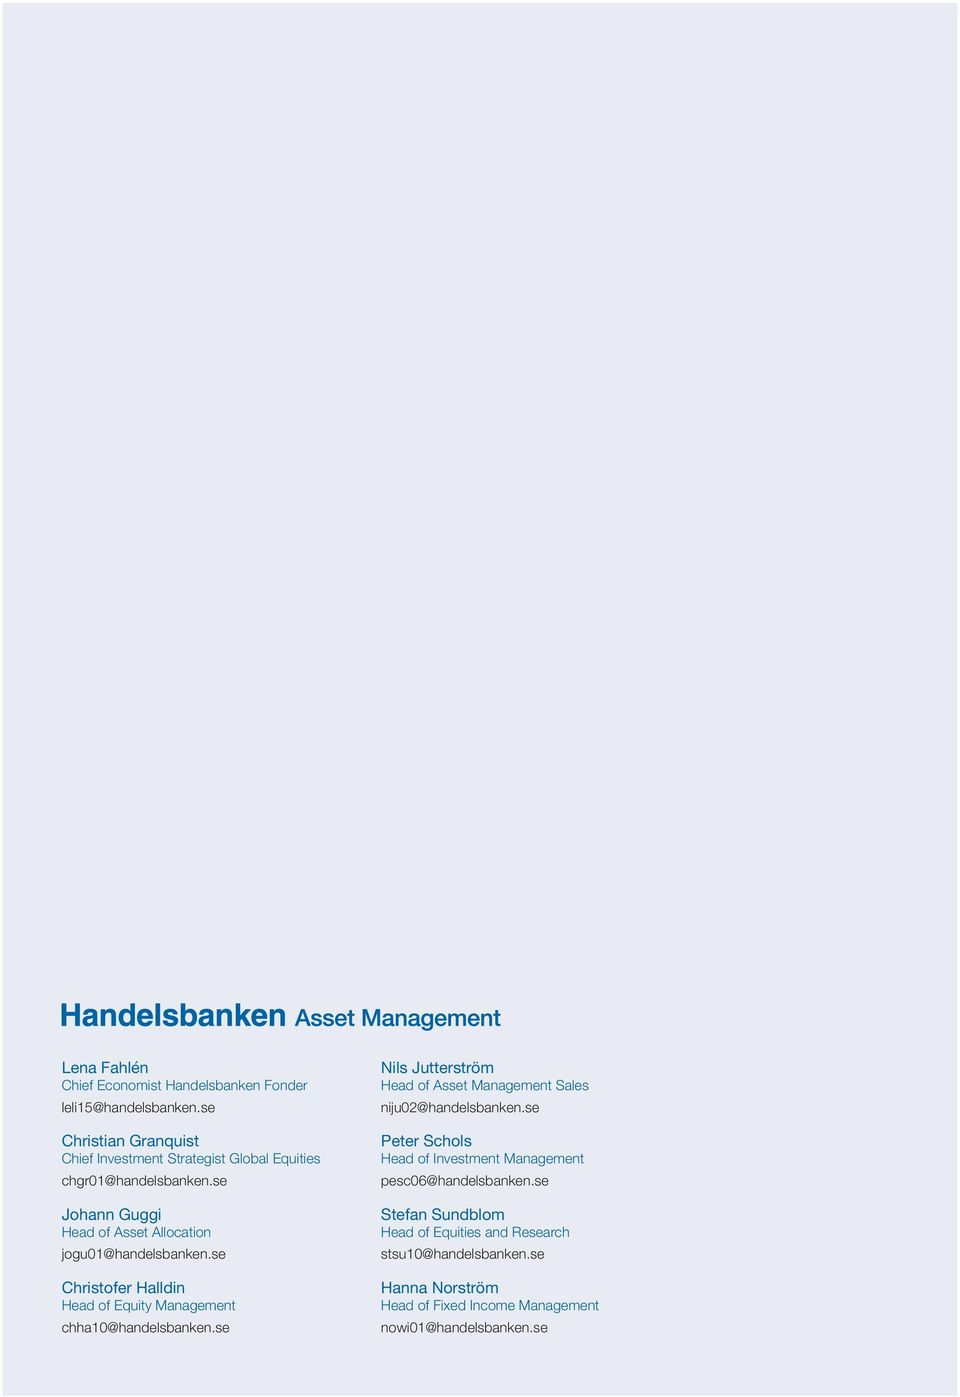 se Johann Guggi Head of Asset Allocation jogu01@handelsbanken.se Christofer Halldin Head of Equity Management chha10@handelsbanken.